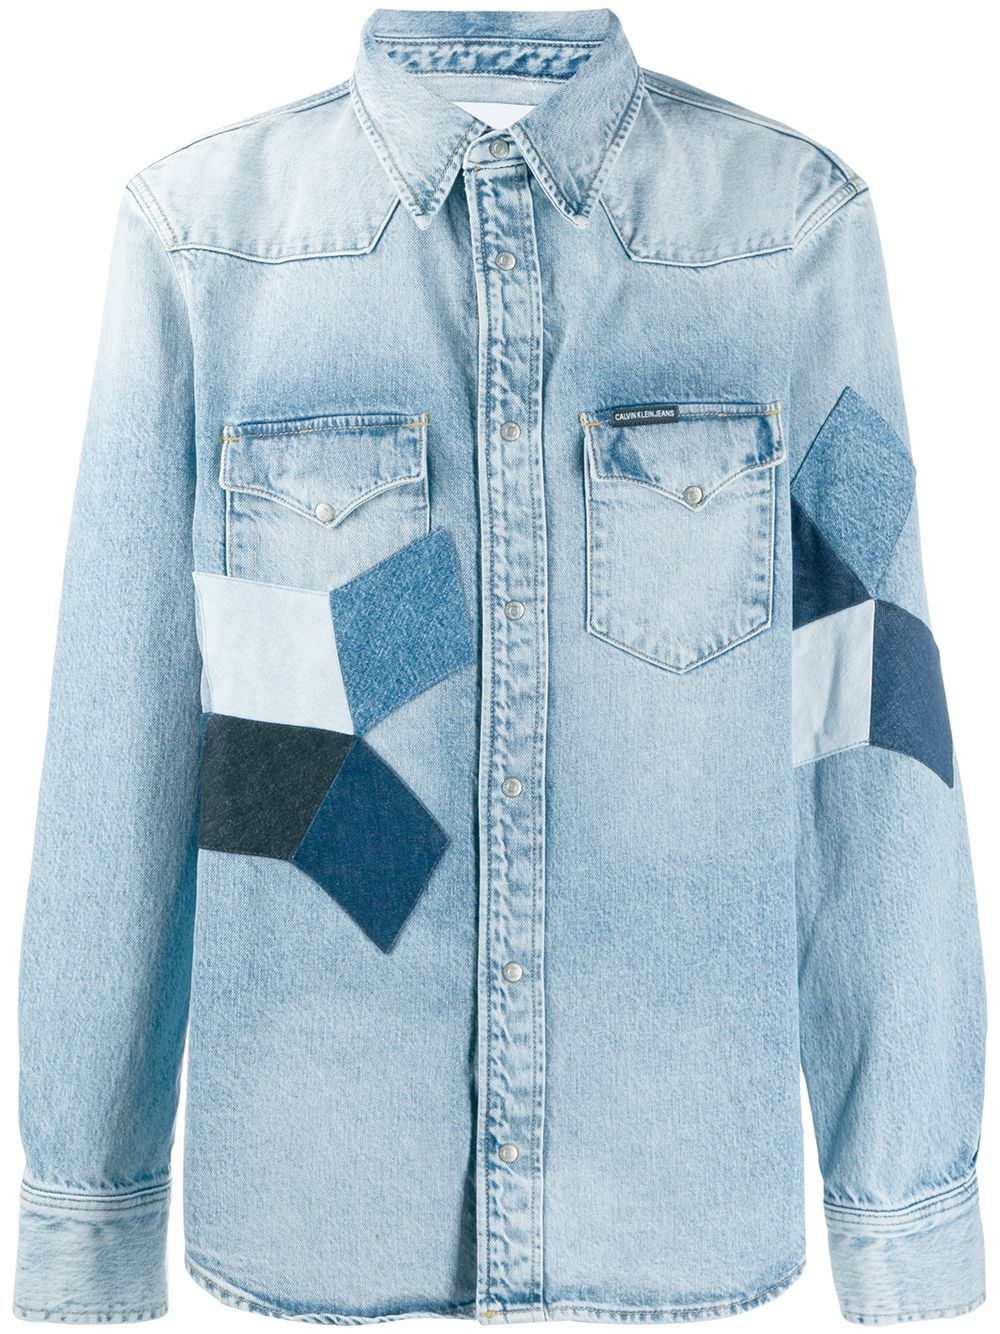 2a2628585a31 Calvin Klein Jeans patchwork denim shirt - Blue in 2019 | Products ...